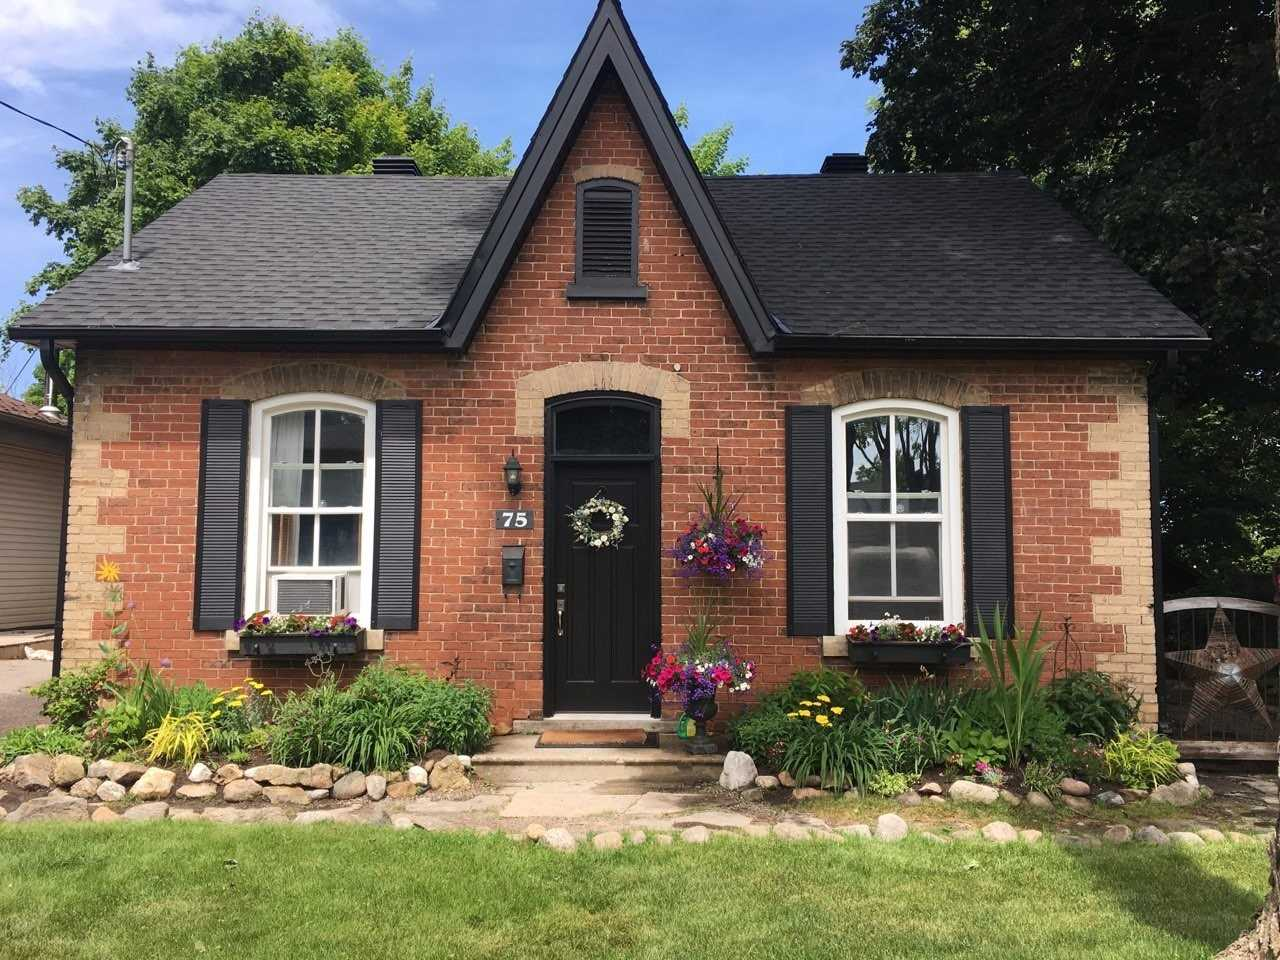 pictures of house for sale MLS: W4723885 located at 75 John St, Orangeville L9W2P7